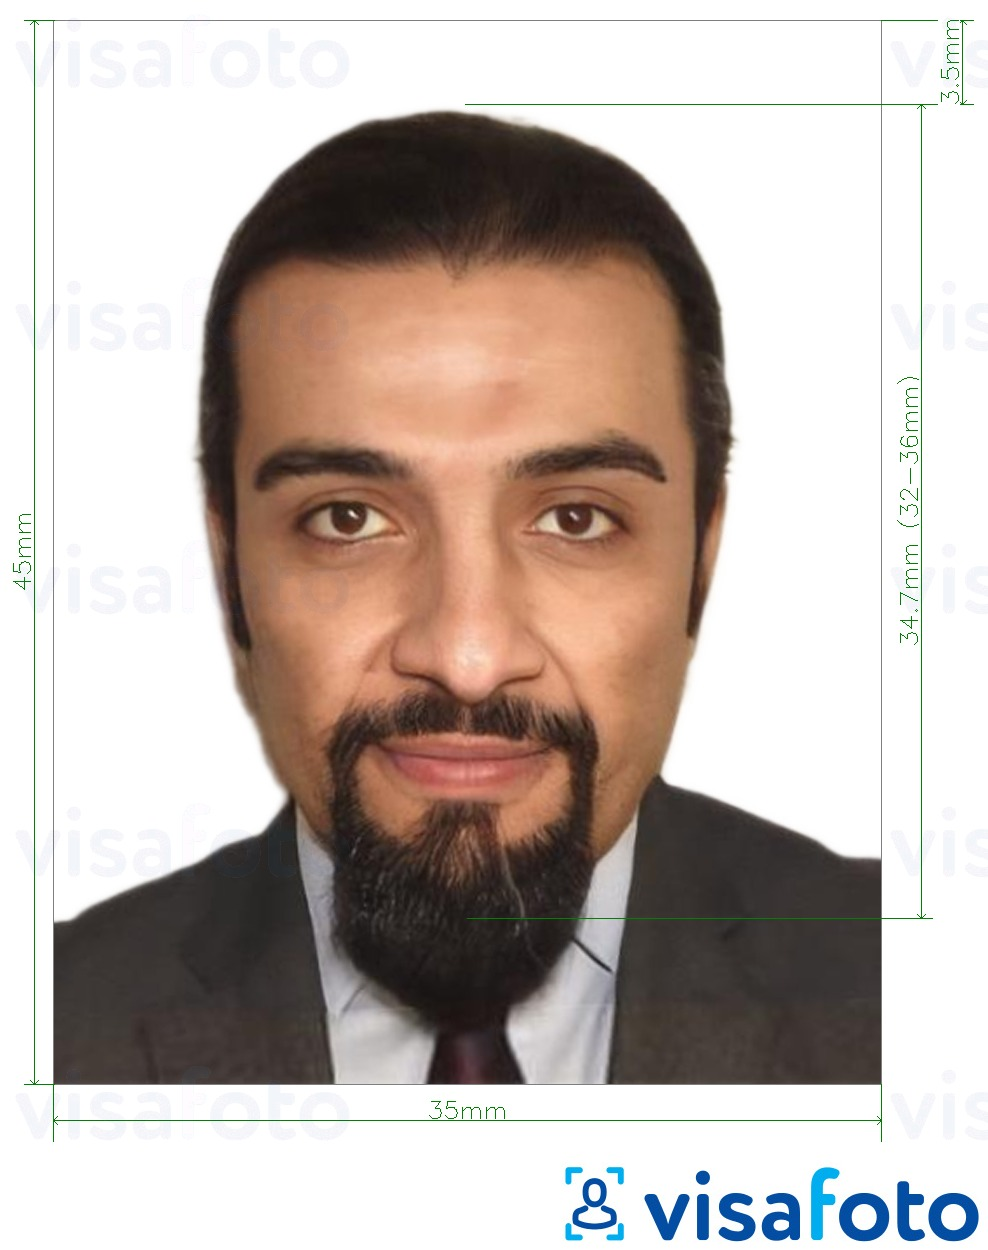 Example of photo for Algeria ID card 35x45 mm (3.5x4.5 cm) with exact size specification